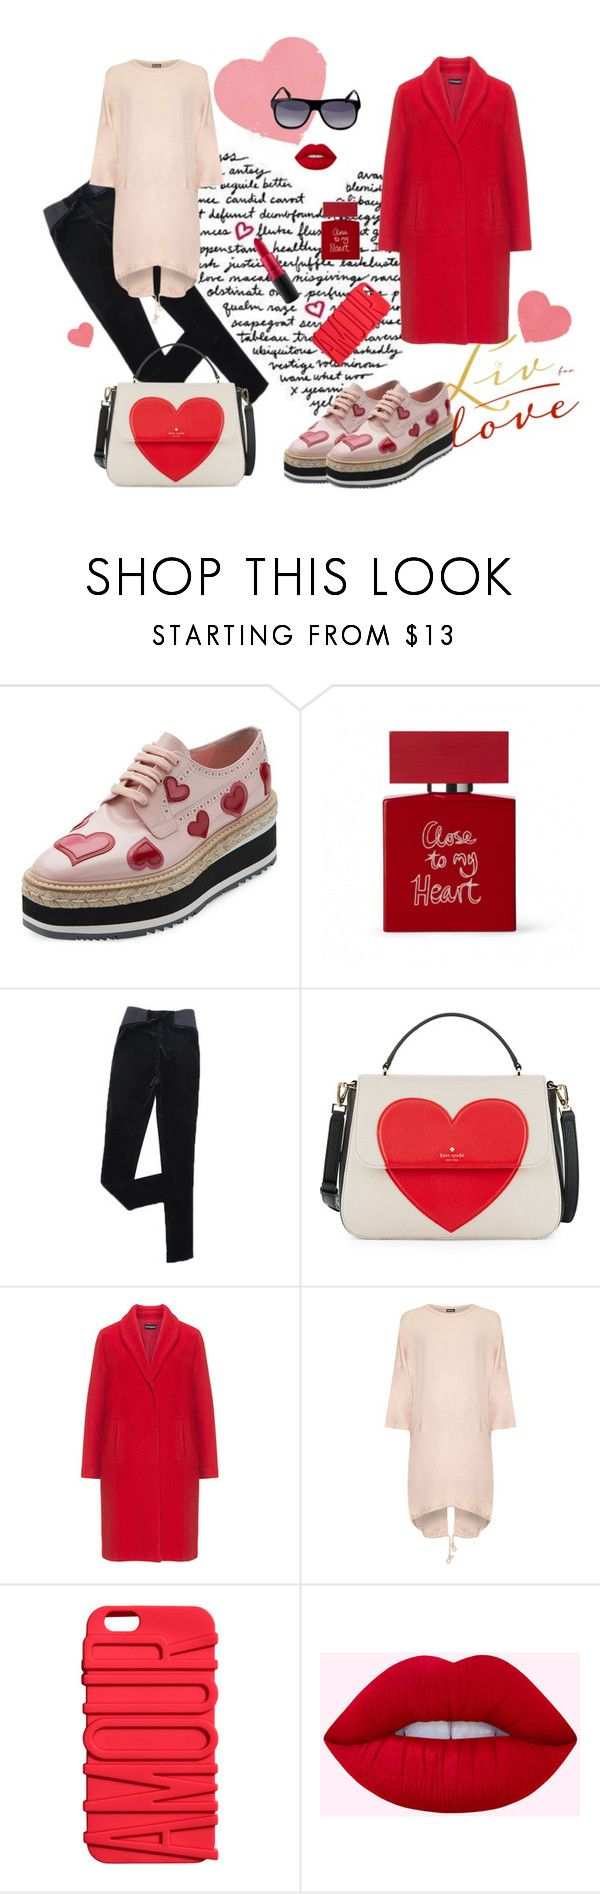 """Amorous mood"" by irishka-matilda on Polyvore featuring мода, Prada, Bella Freud, Kate Spade, Samoon, WearAll, MAC Cosmetics, vintage, sunglasses и Guy_Laroche"